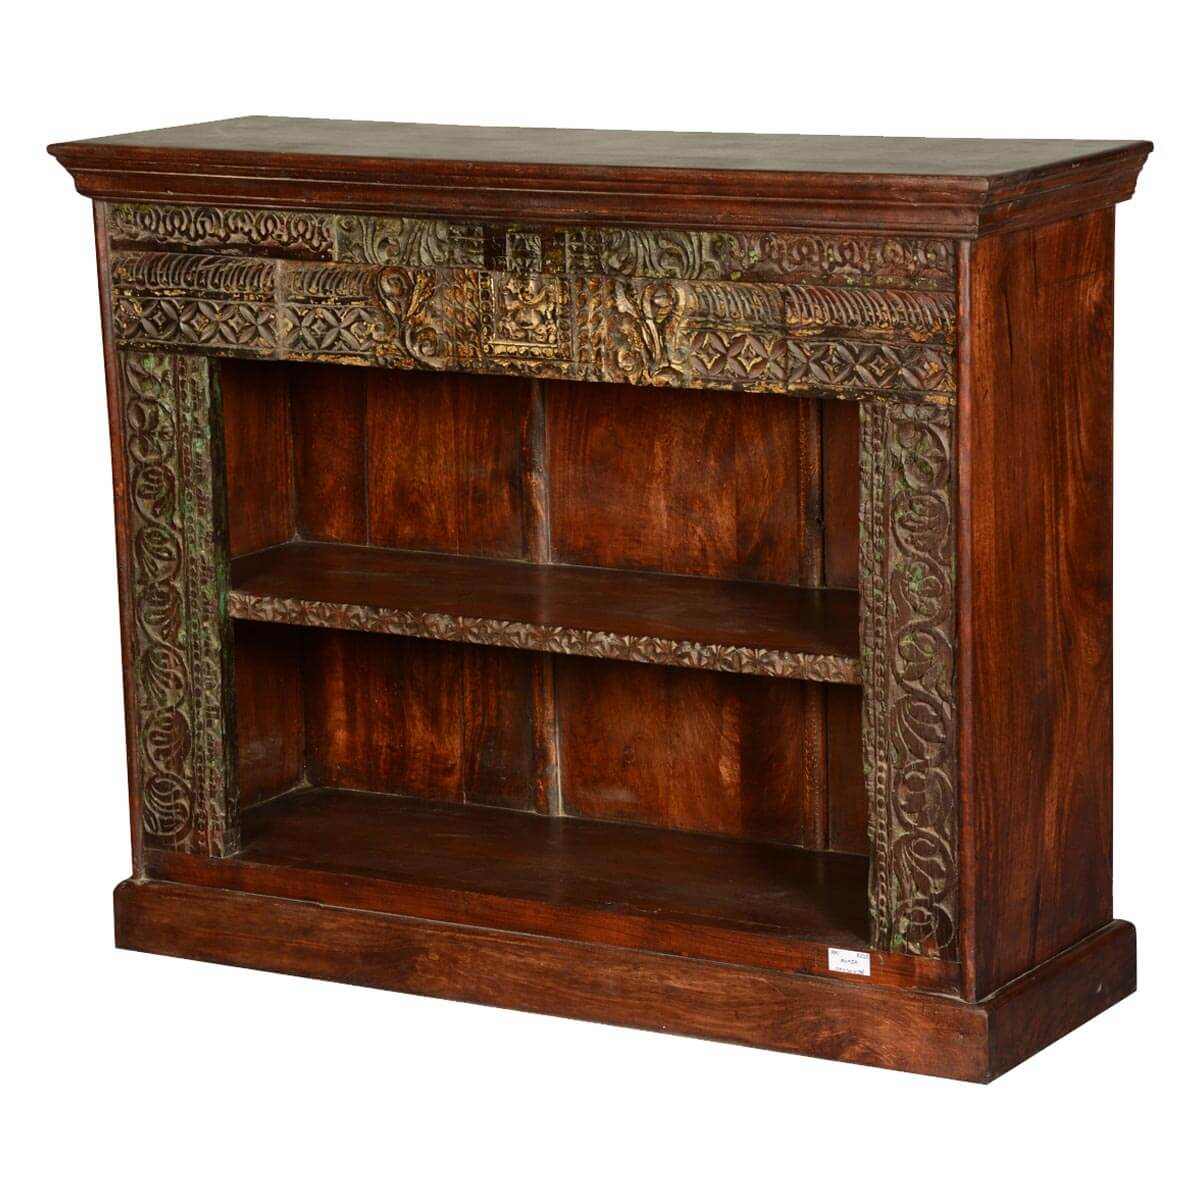 Elizabethan Classic Hand Carved 2 Open Shelf Reclaimed Wood Bookcase